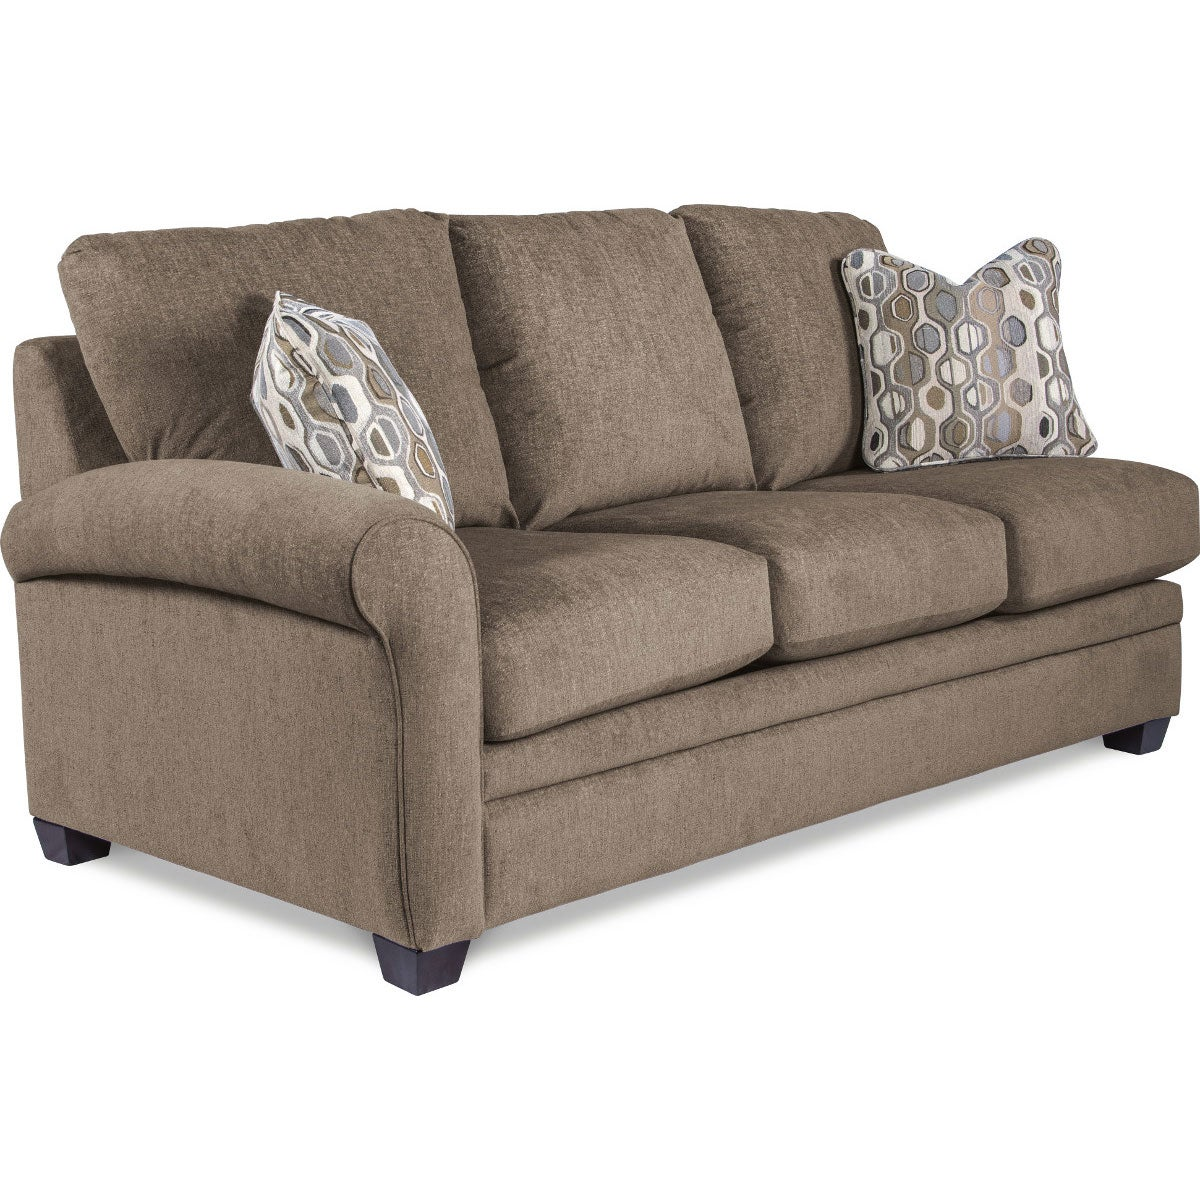 Natalie Premier Right Arm Sitting Sofa